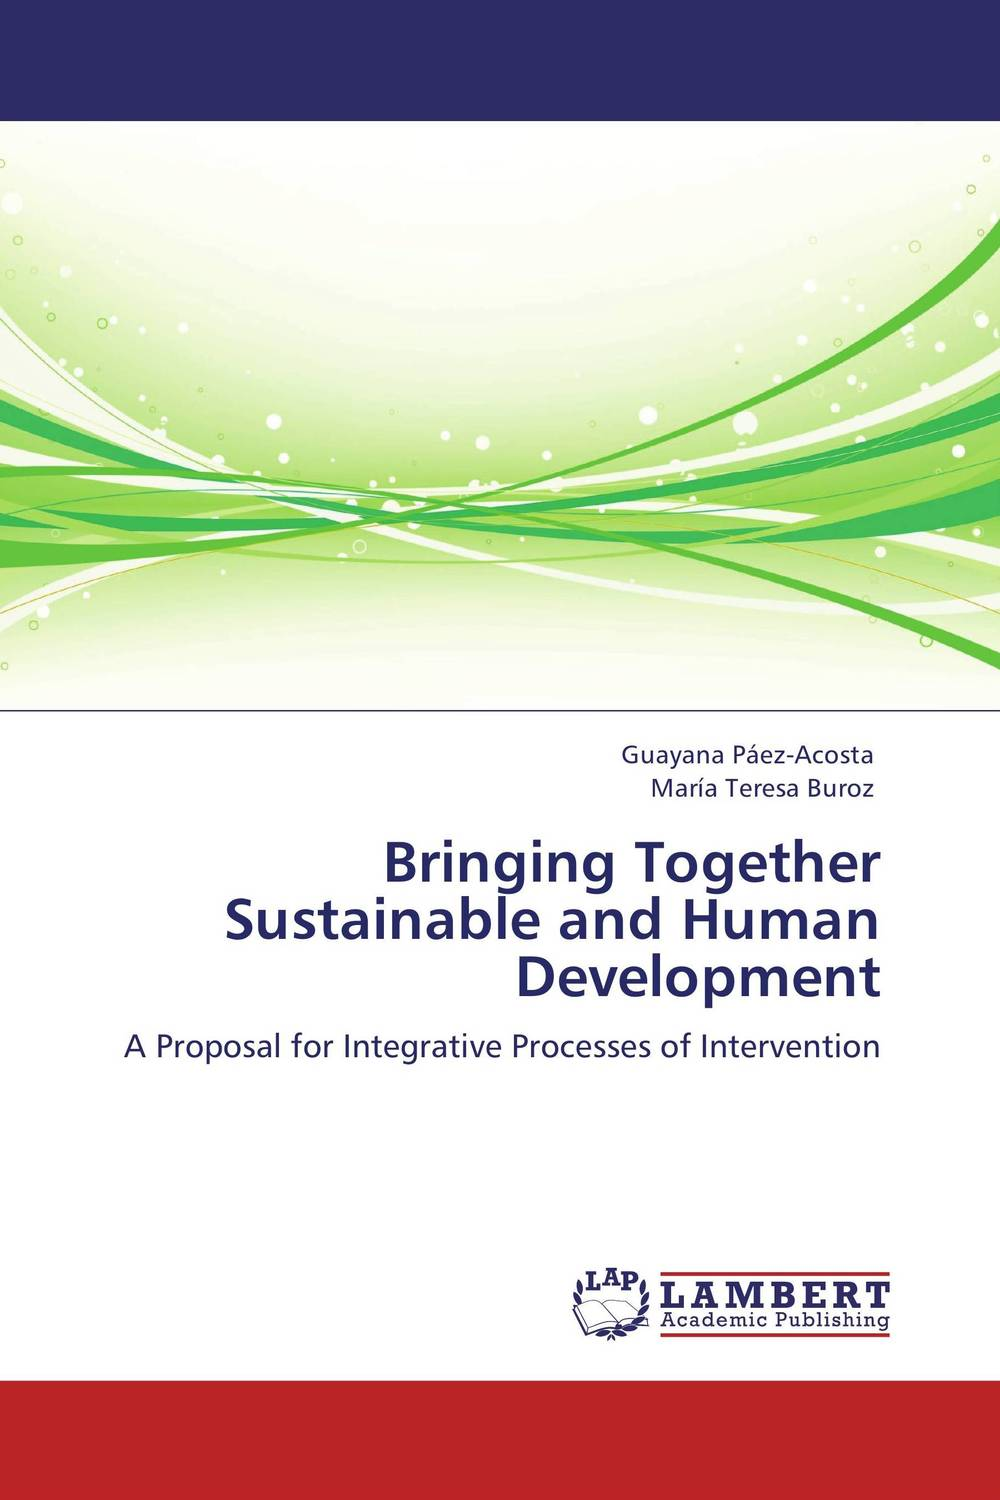 Bringing Together Sustainable and Human Development